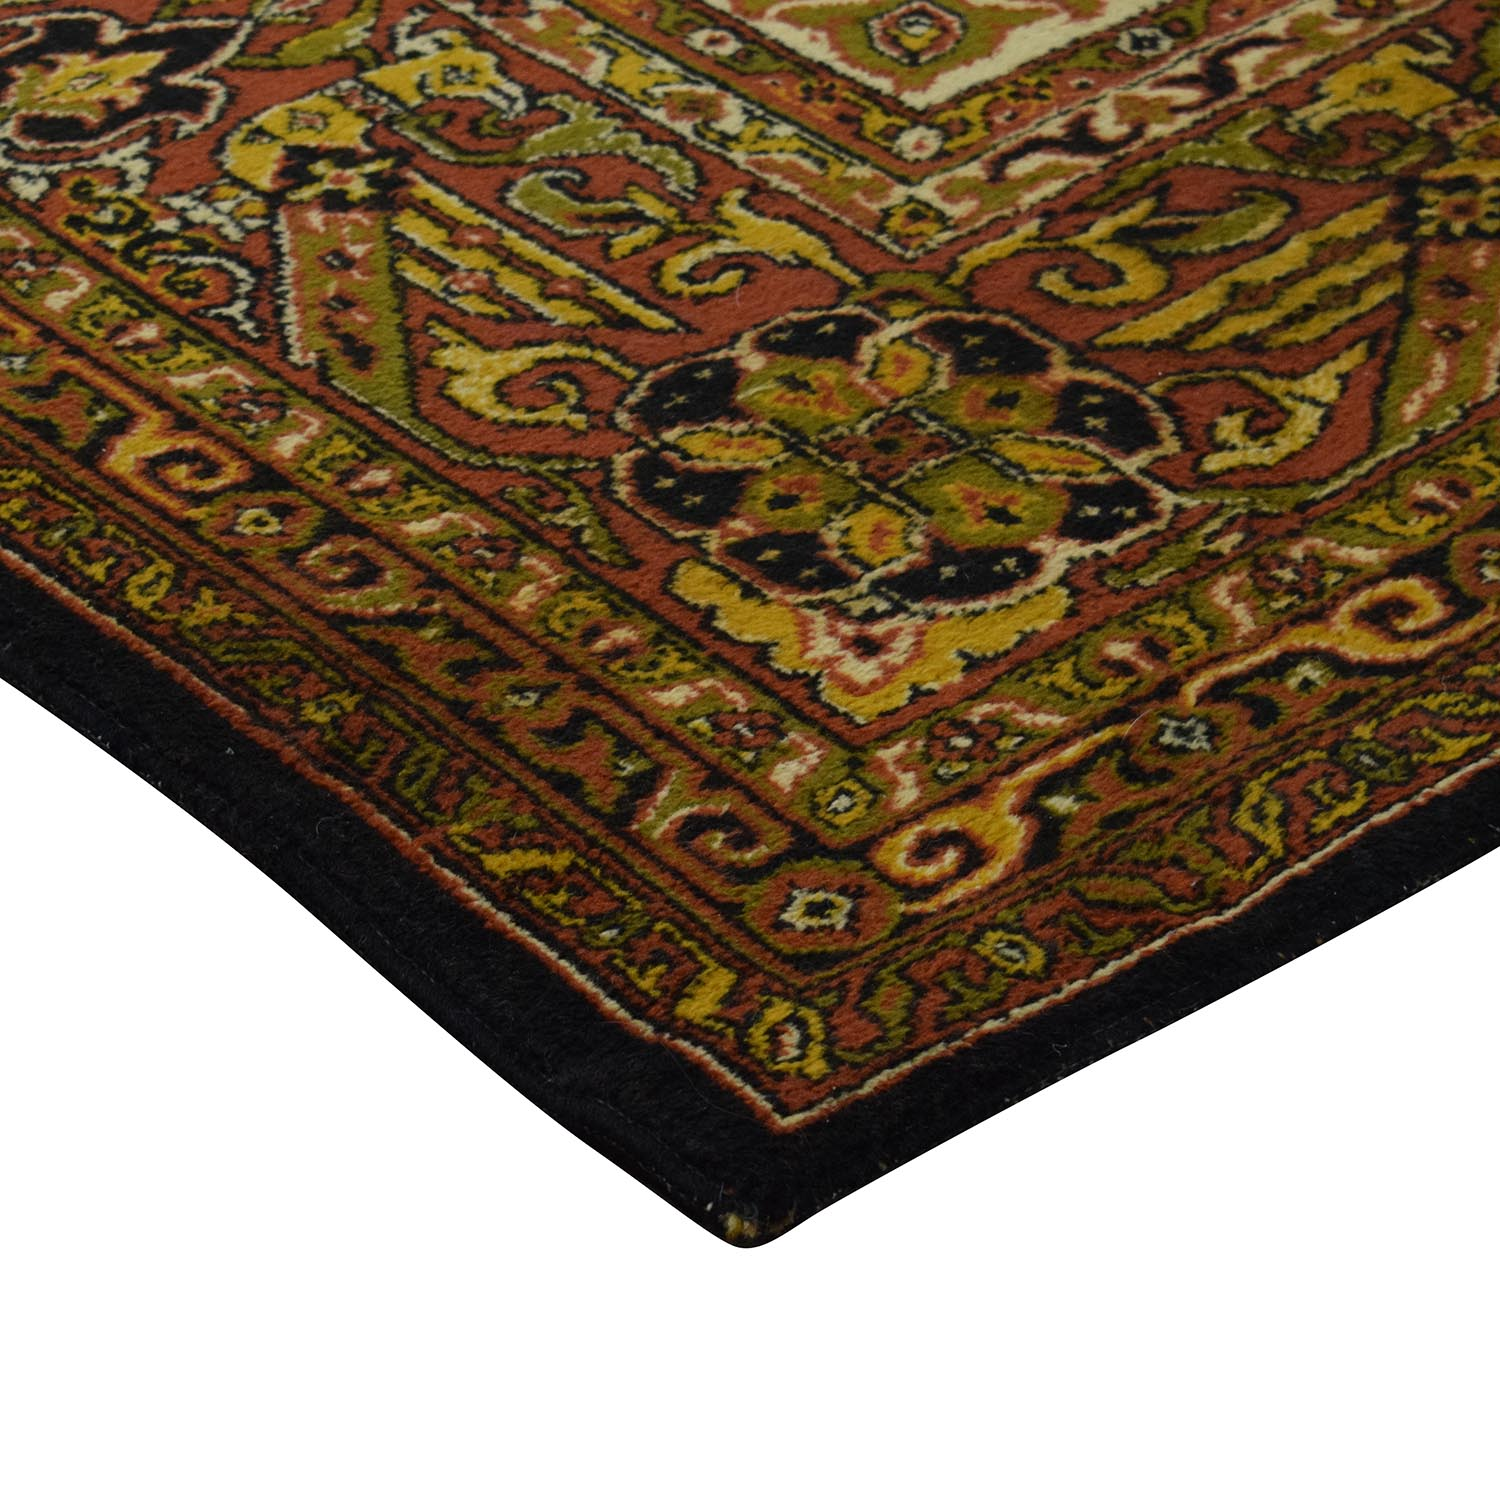 Antique Persian Wool Rug nj